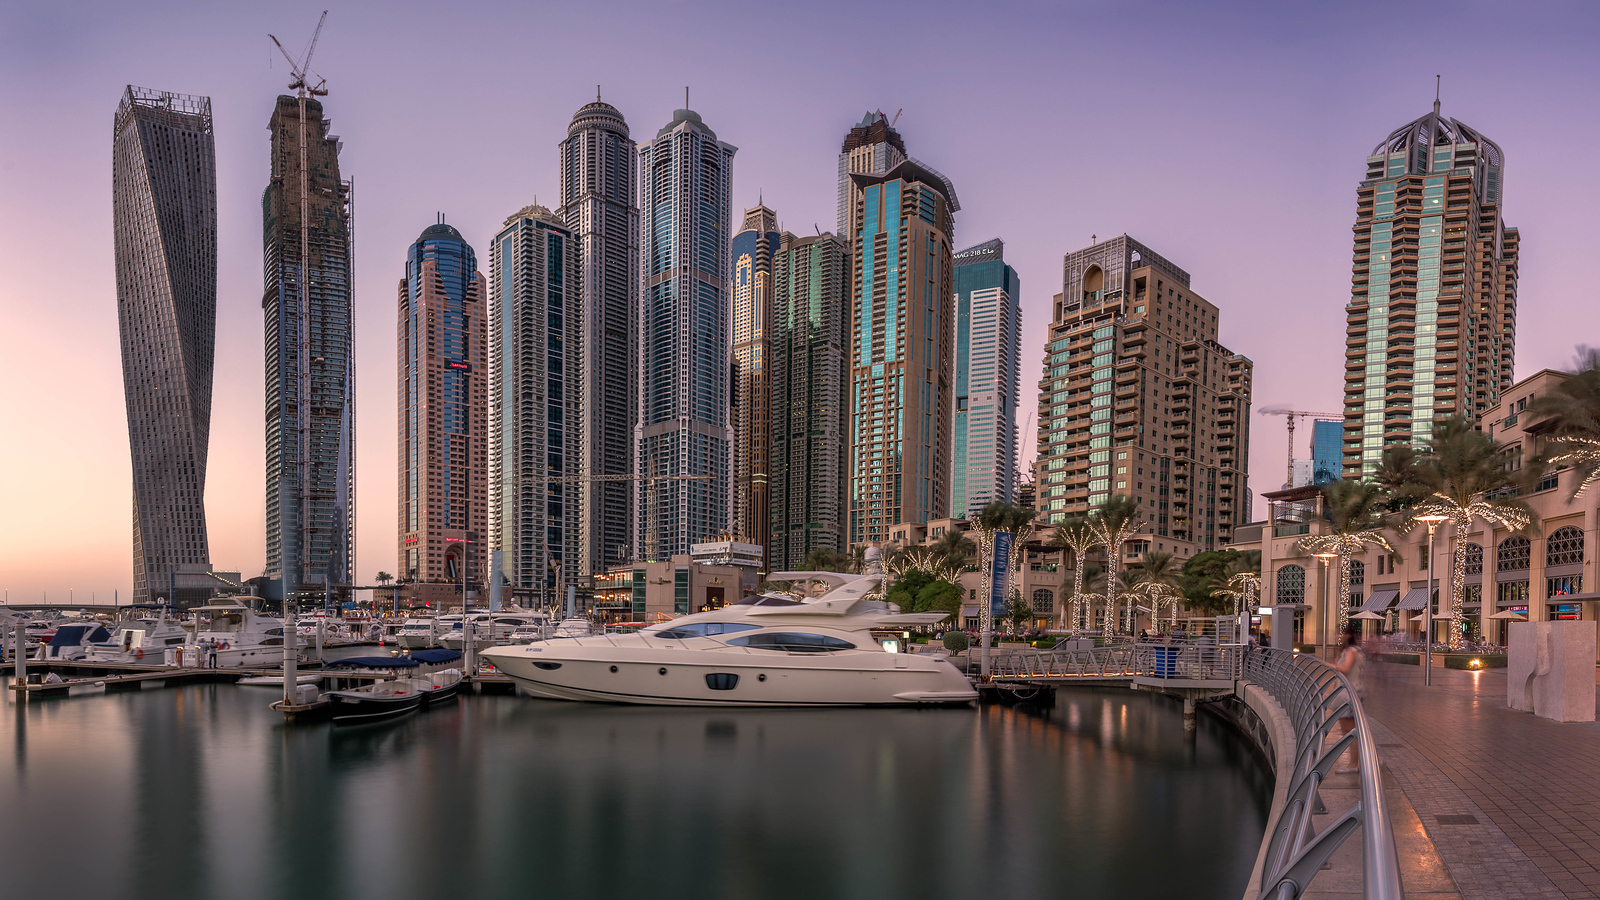 Evening in the Dubai Marina